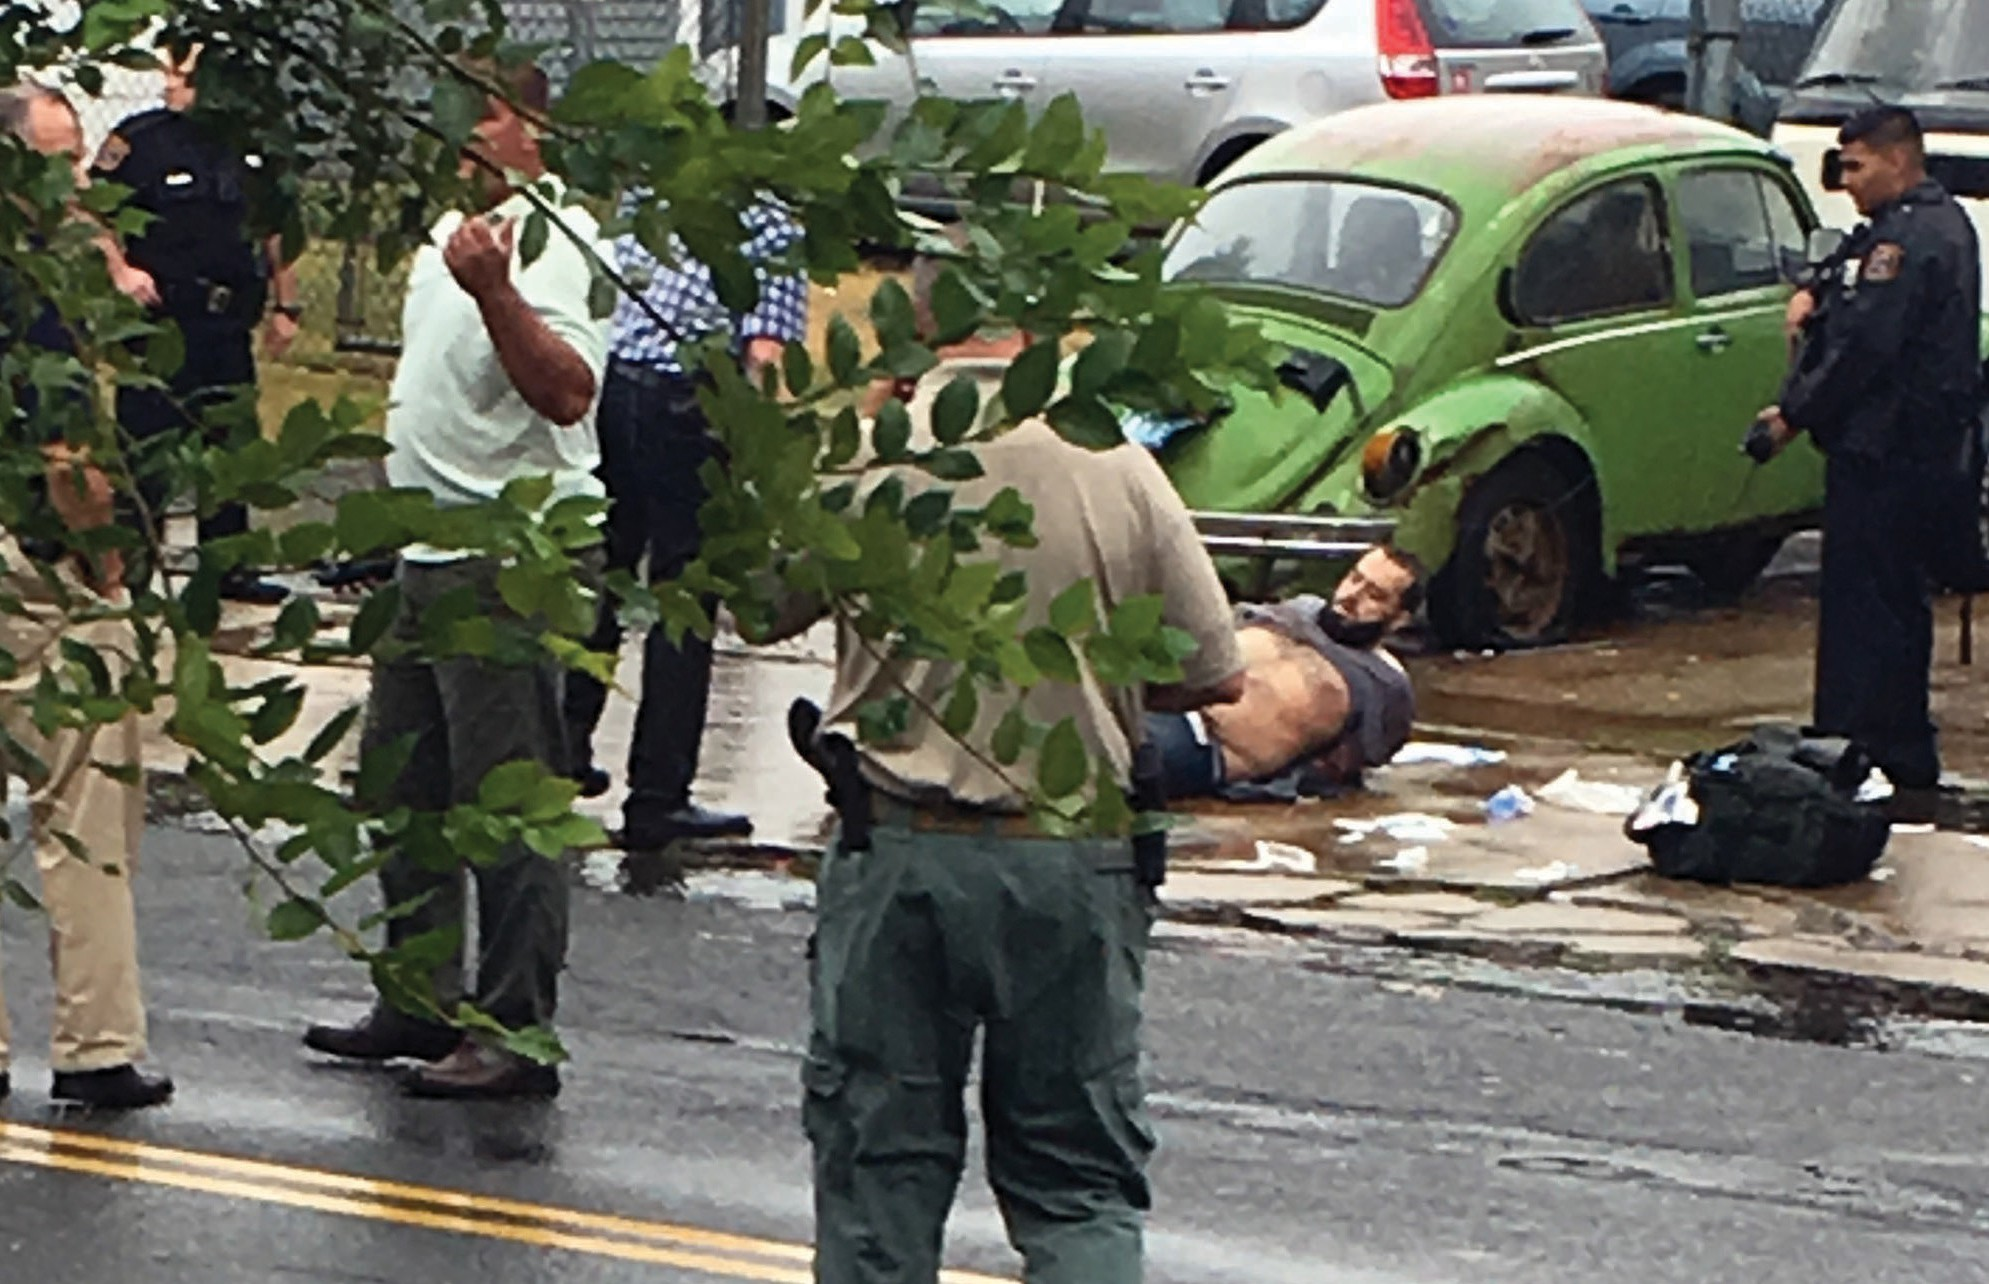 Ahmad Khan Rahami is taken into custody after a shootout with police Monday in Linden, N.J. Rahami was wanted for questioning in the bombings that rocked the Chelsea neighborhood of New York and the New Jersey shore town of Seaside Park.